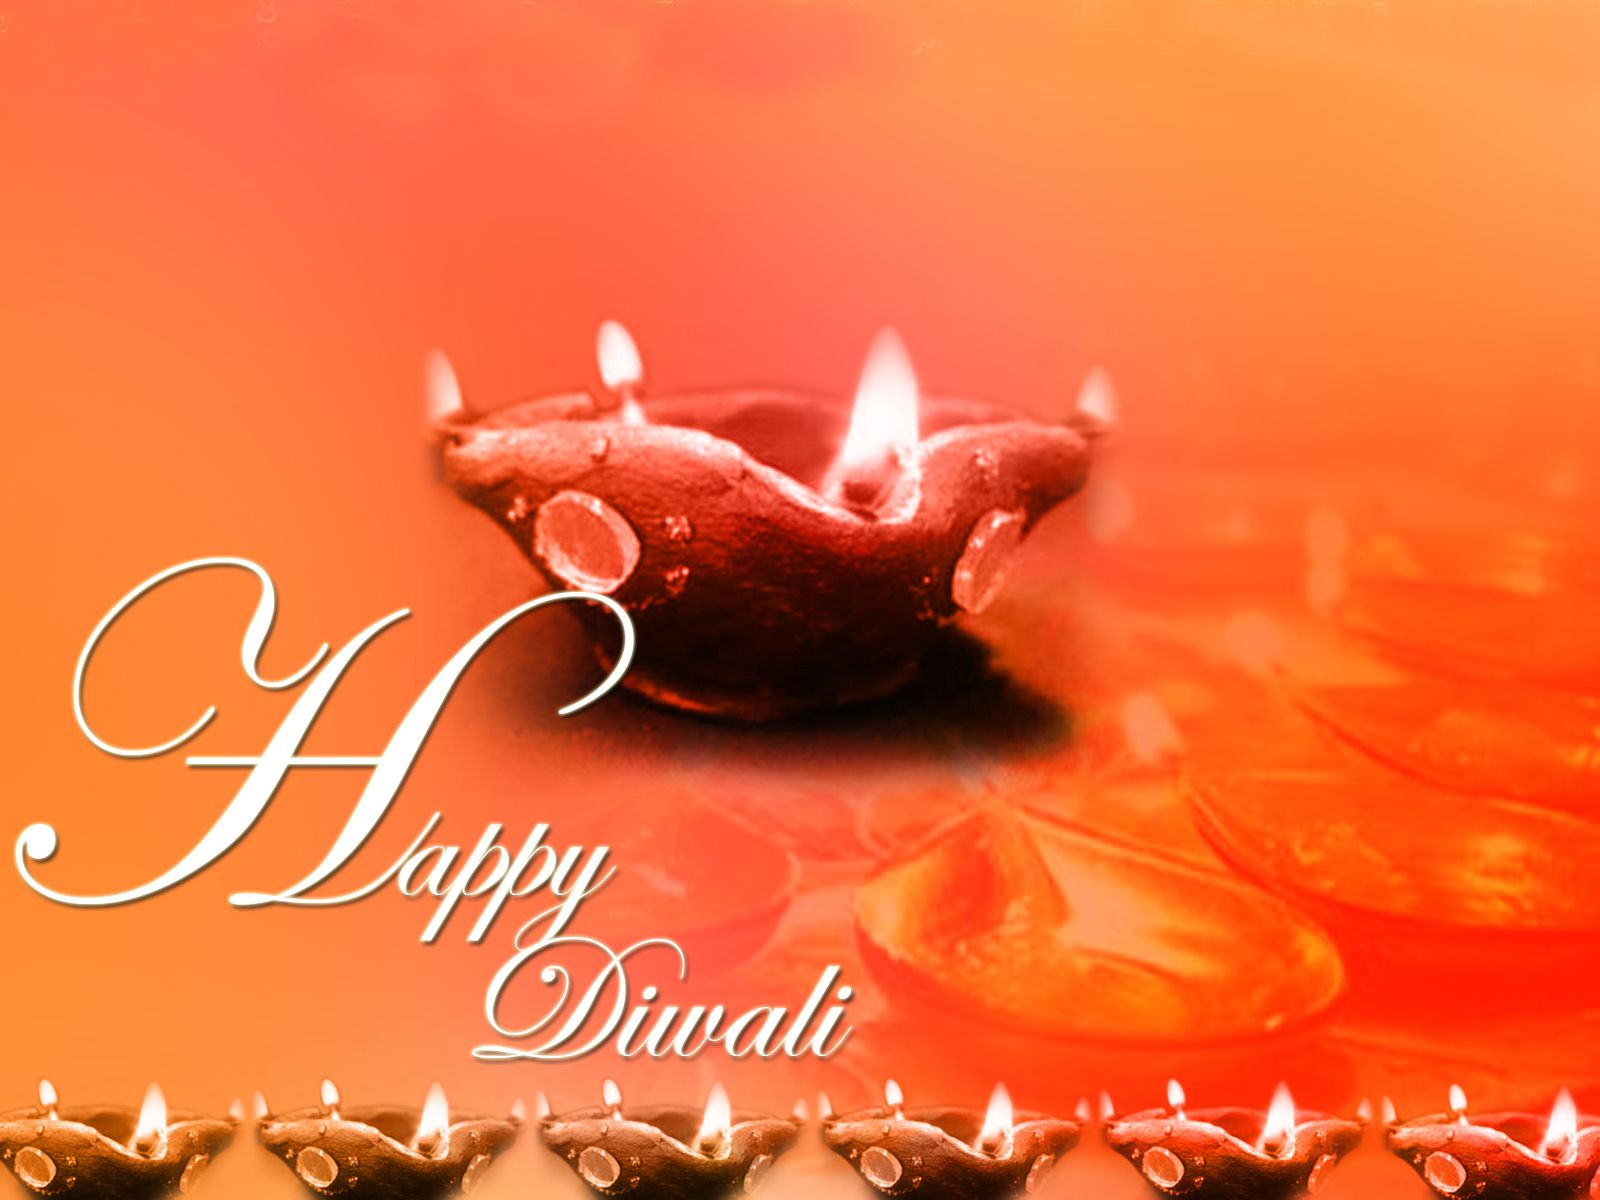 2015 diwali images free download httphappydiwali2u diwali 2015 diwali images free download kristyandbryce Image collections